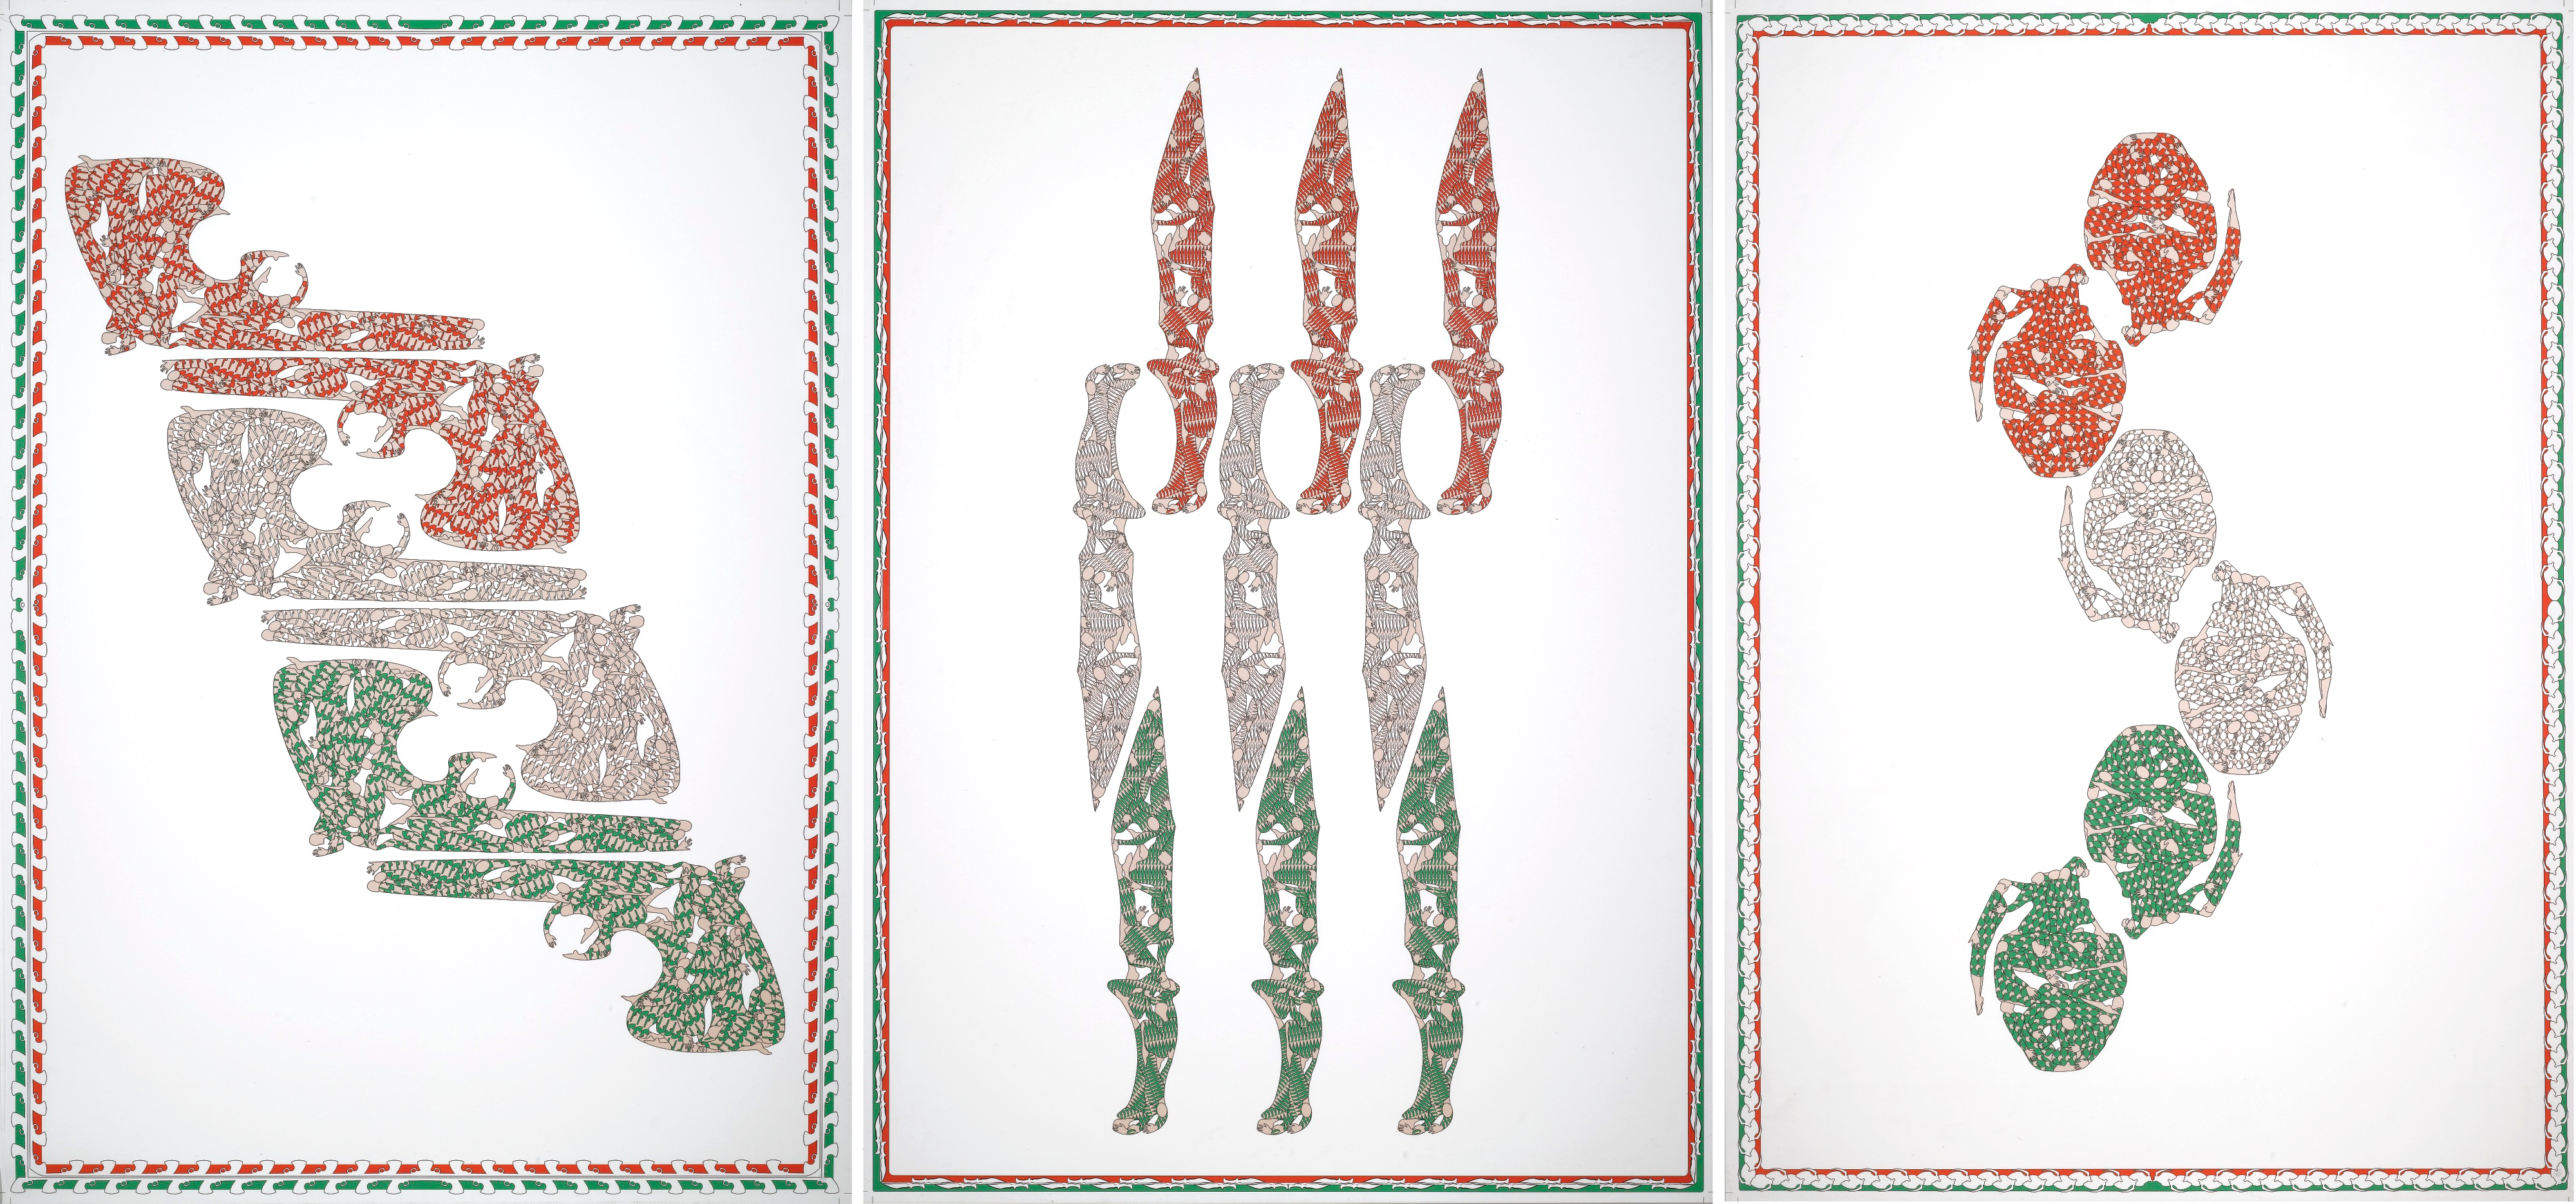 Parastou Forouhar, Untitled from the Flags Collection series, 100 x 70 cm each, 2010